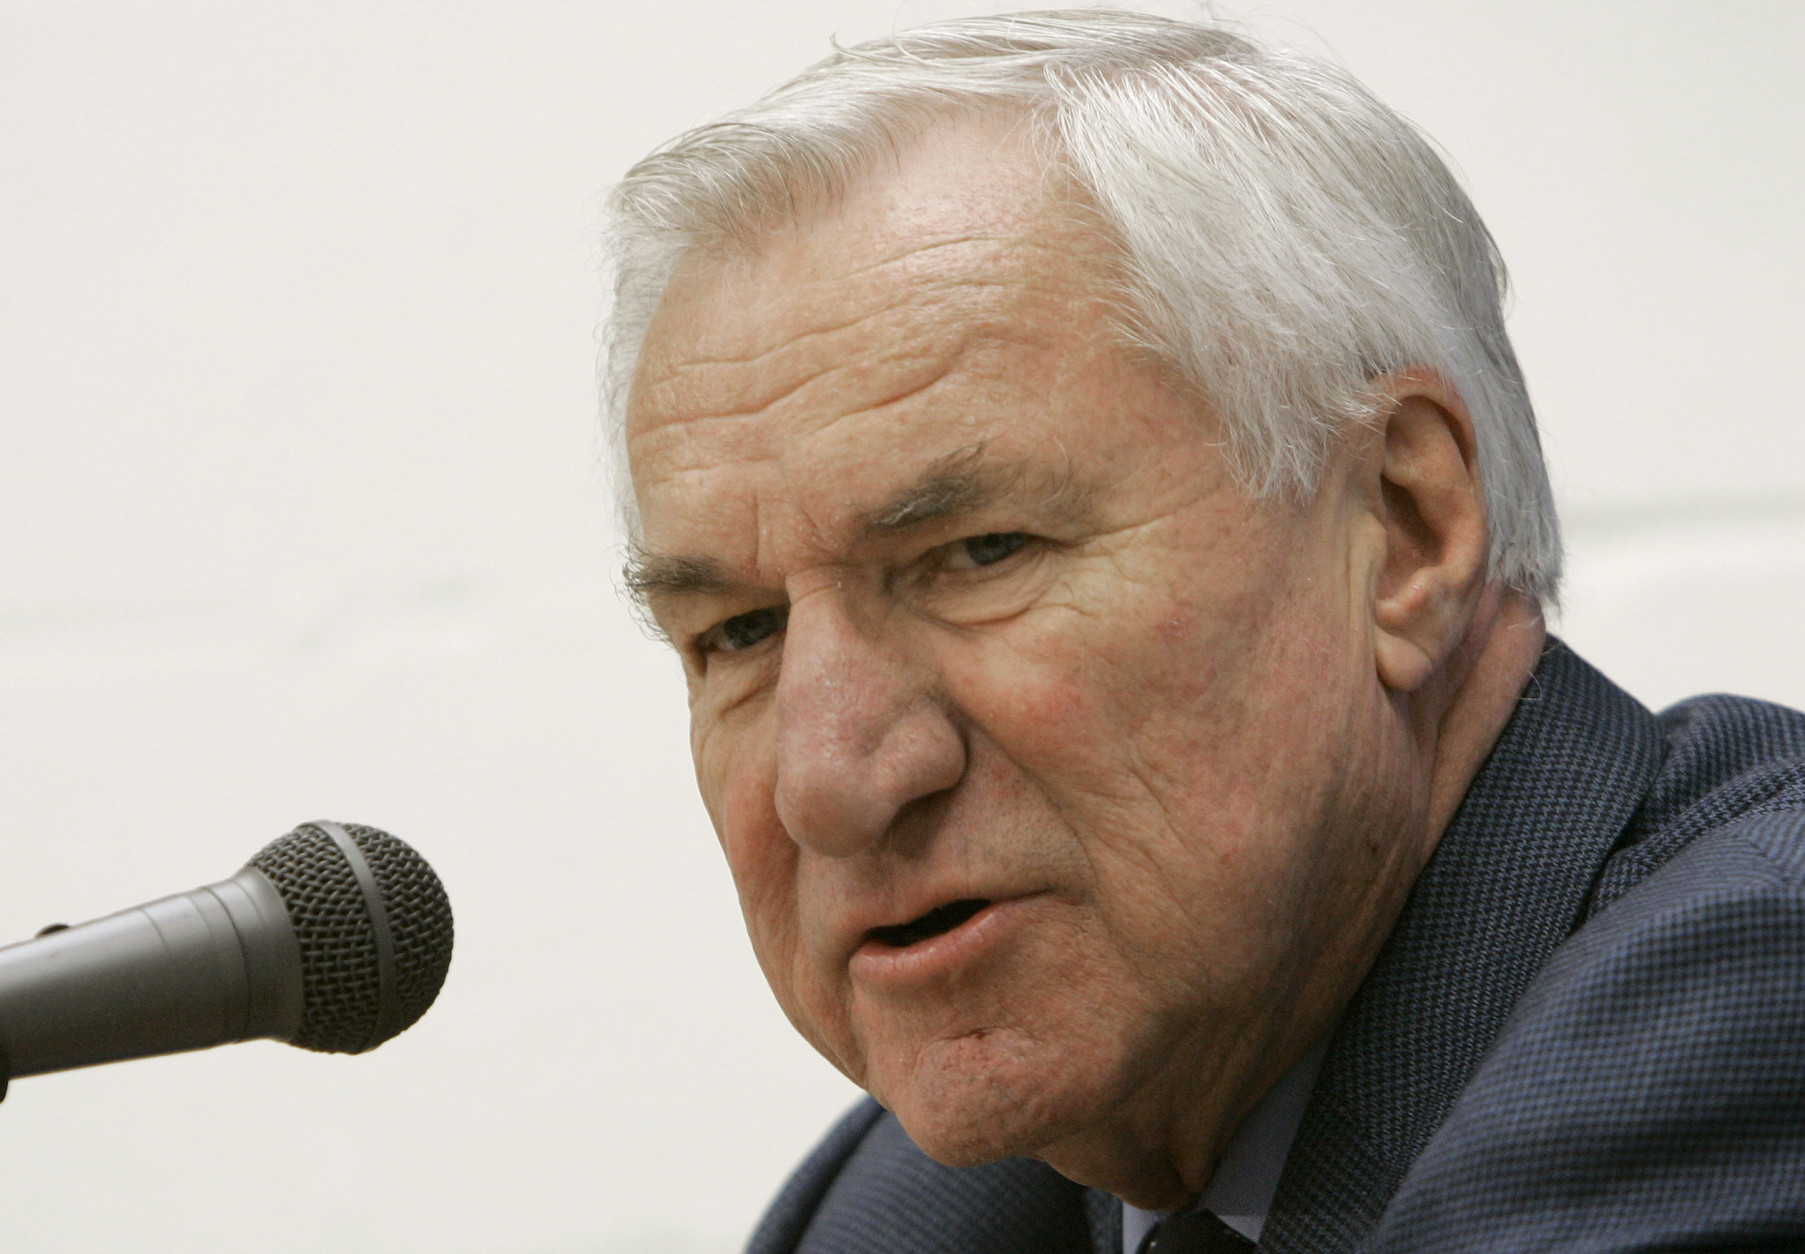 Former North Carolina basketball coach Dean Smith answers questions during a press conference in Chapel Hill, N.C., Friday, Dec. 8, 2006. - Dean-Smith-1805x1254